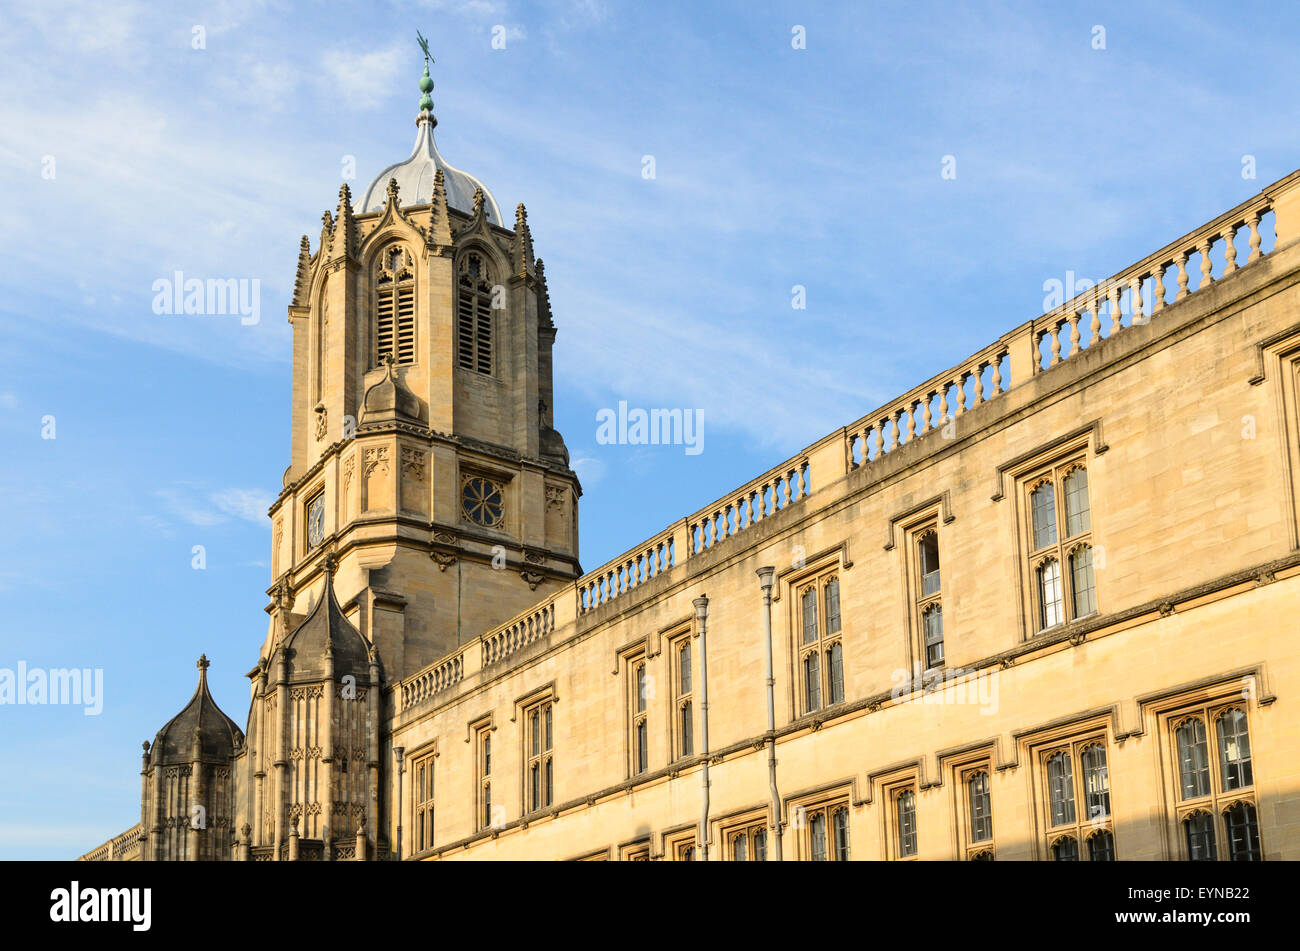 Tom Tower designed by Sir Christopher Wren, Christ Church, Oxford University, Oxford, England, UK. - Stock Image